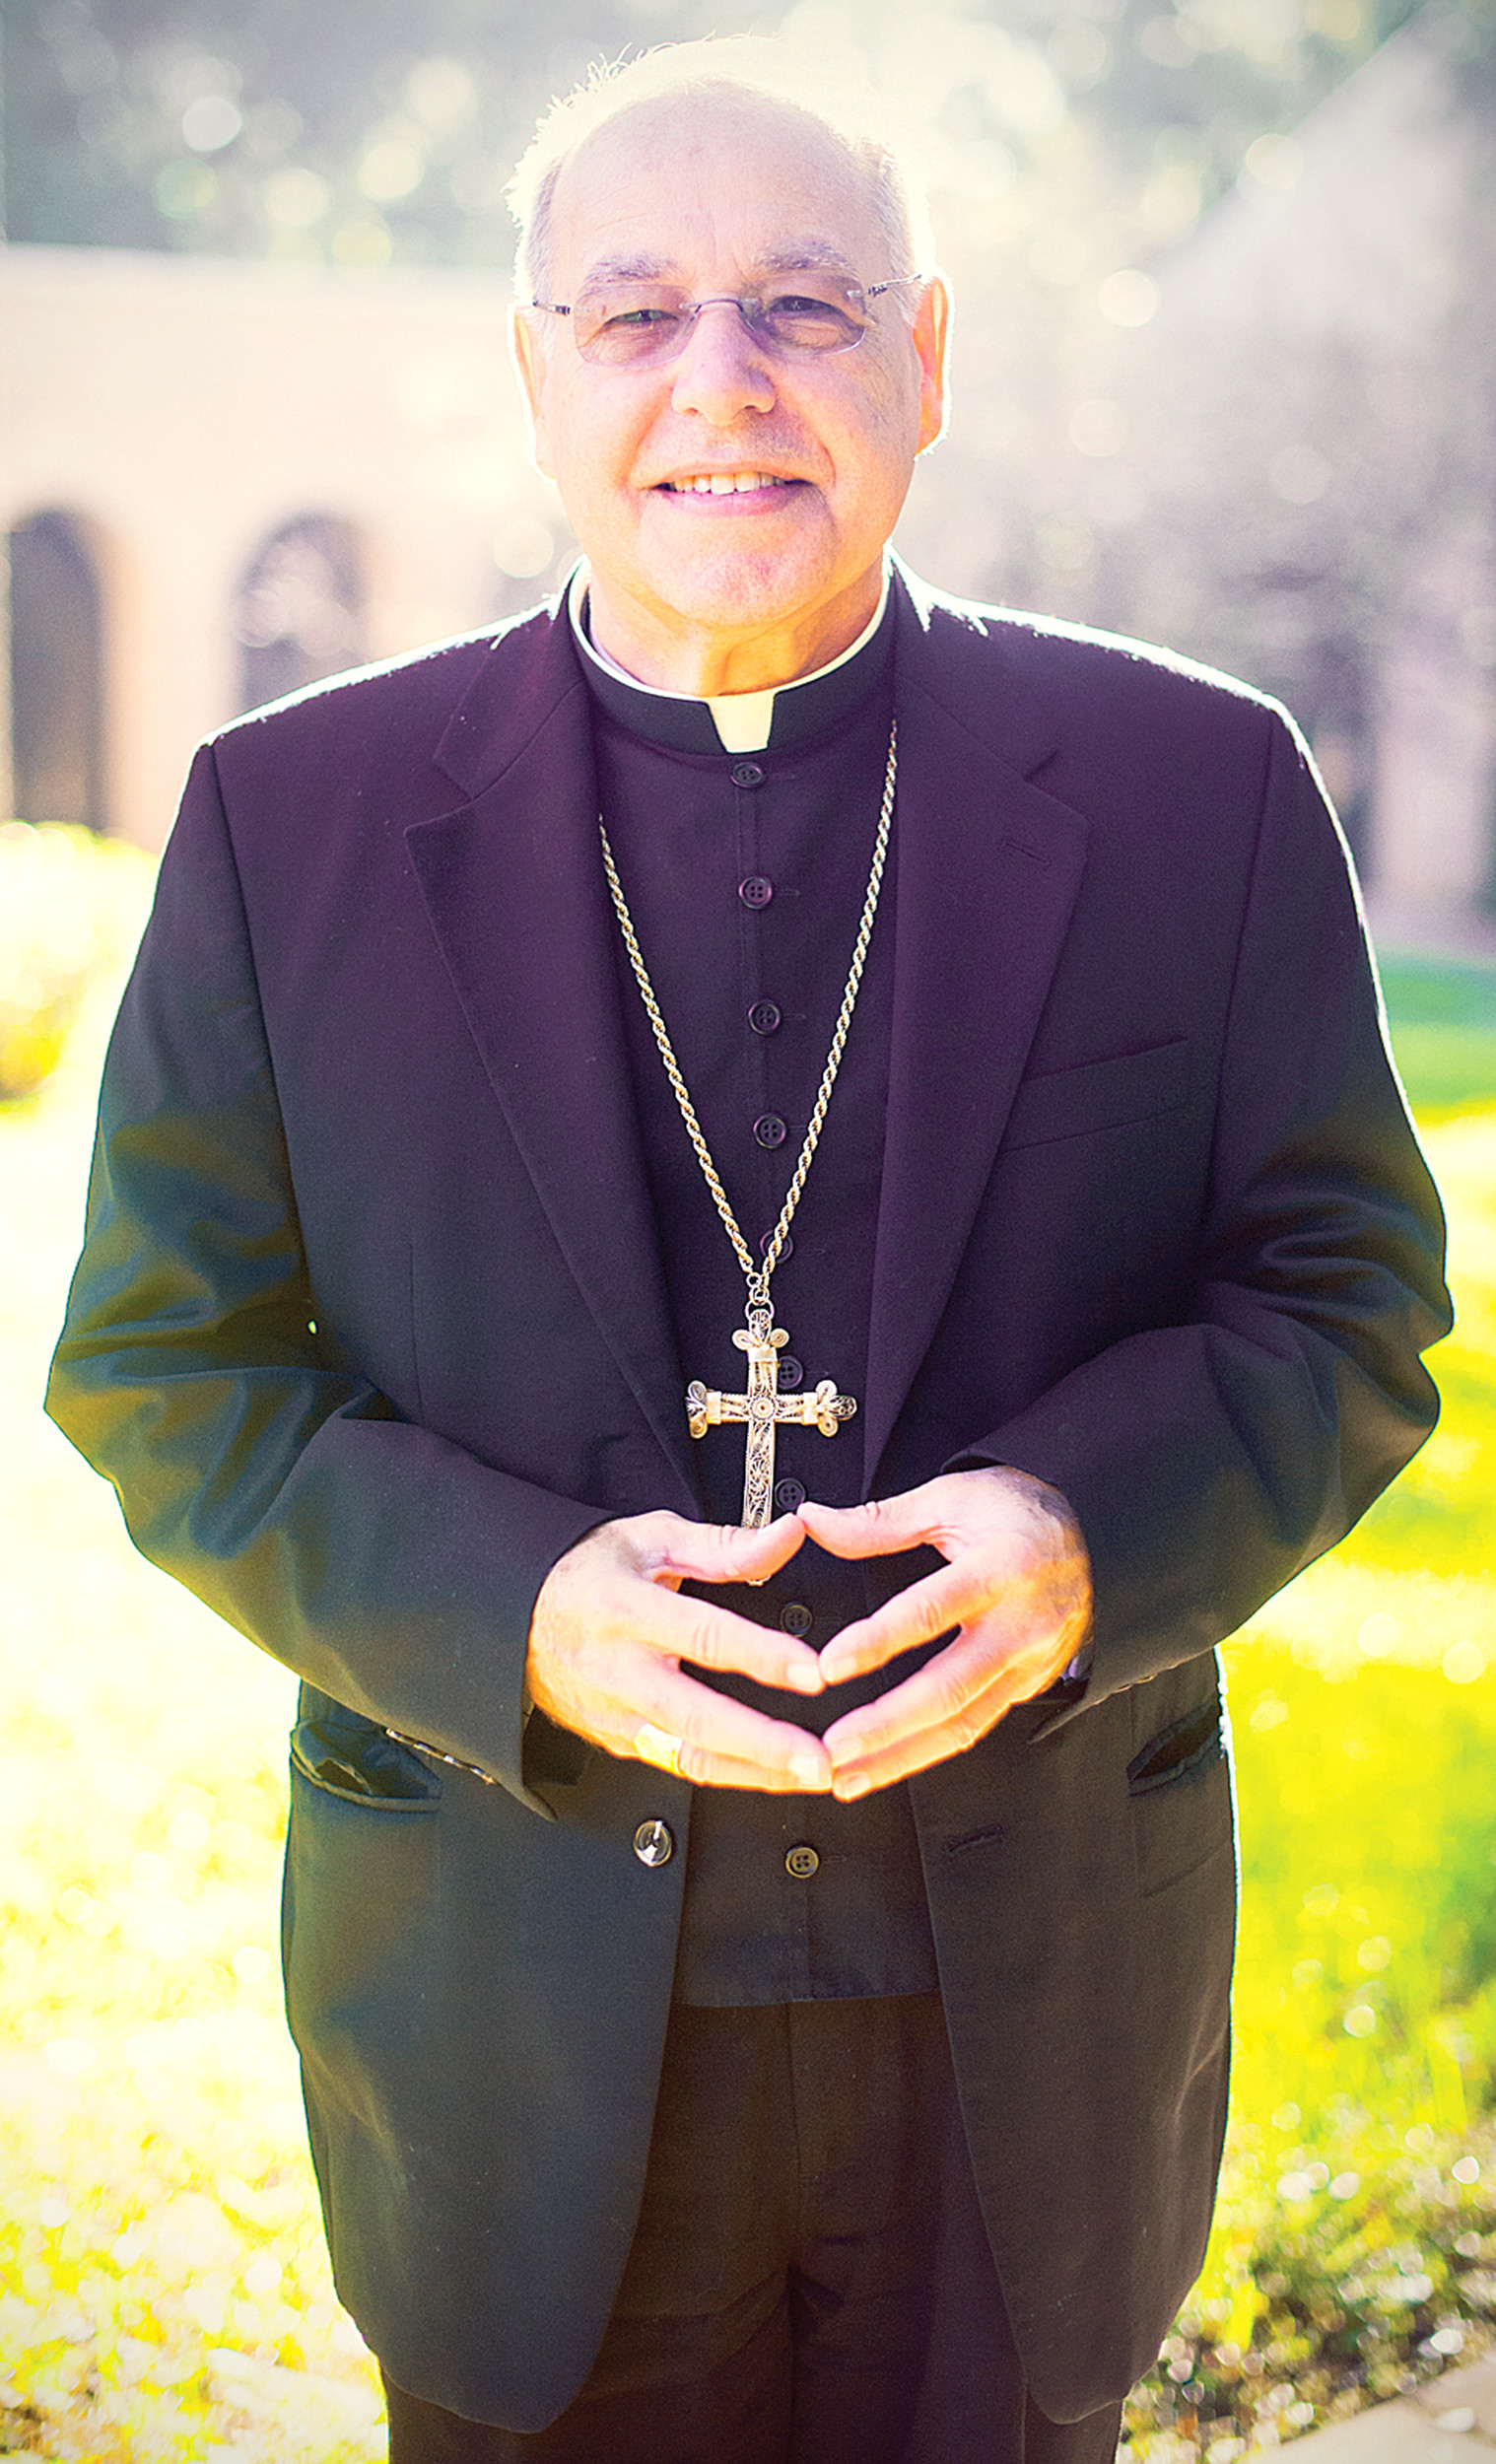 The Most Rev. Felipe J. Estévez